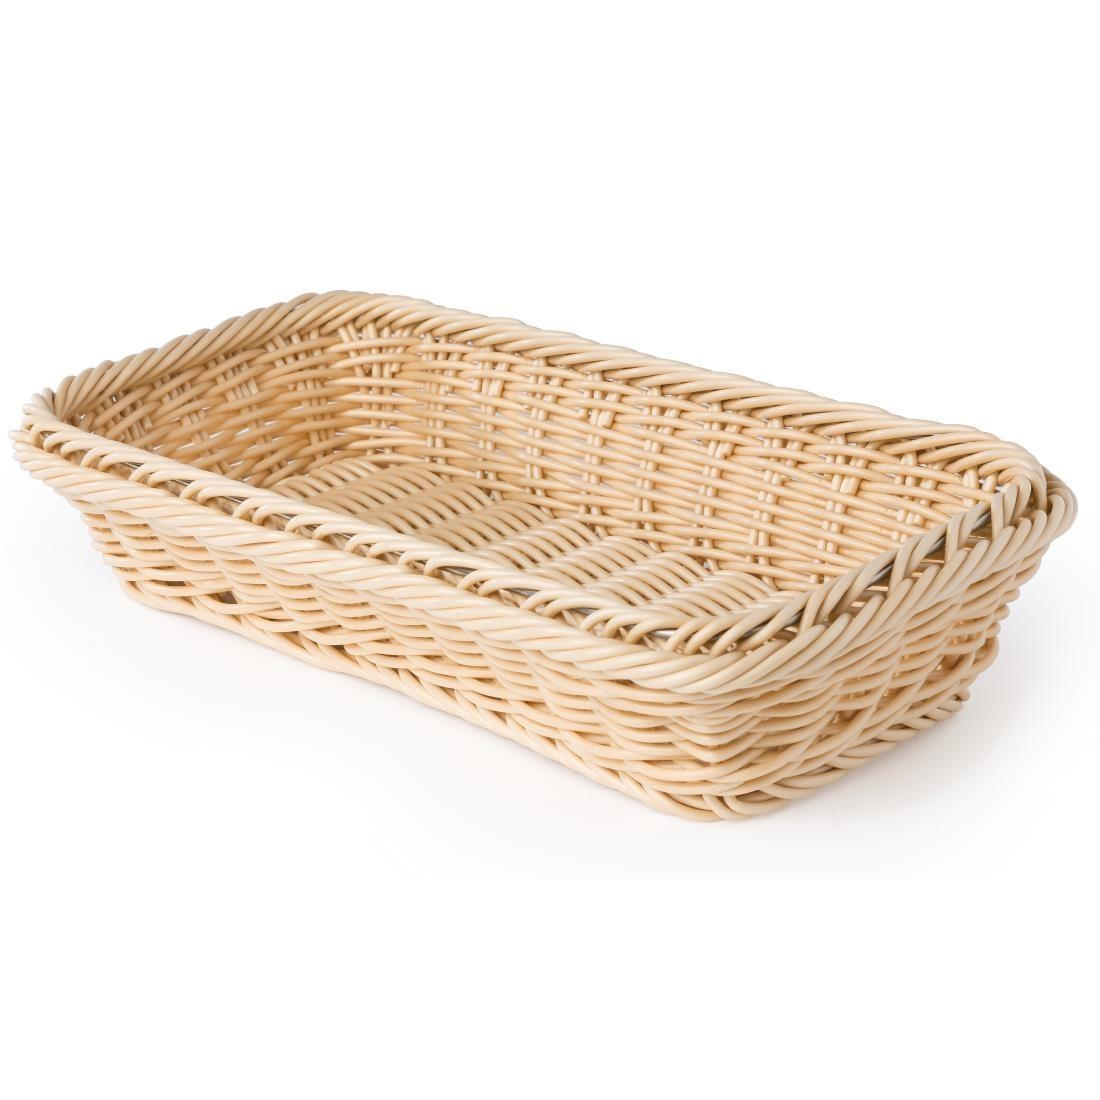 Polypropylene Natural Rattan Basket 1/3 GN - Each - CF304